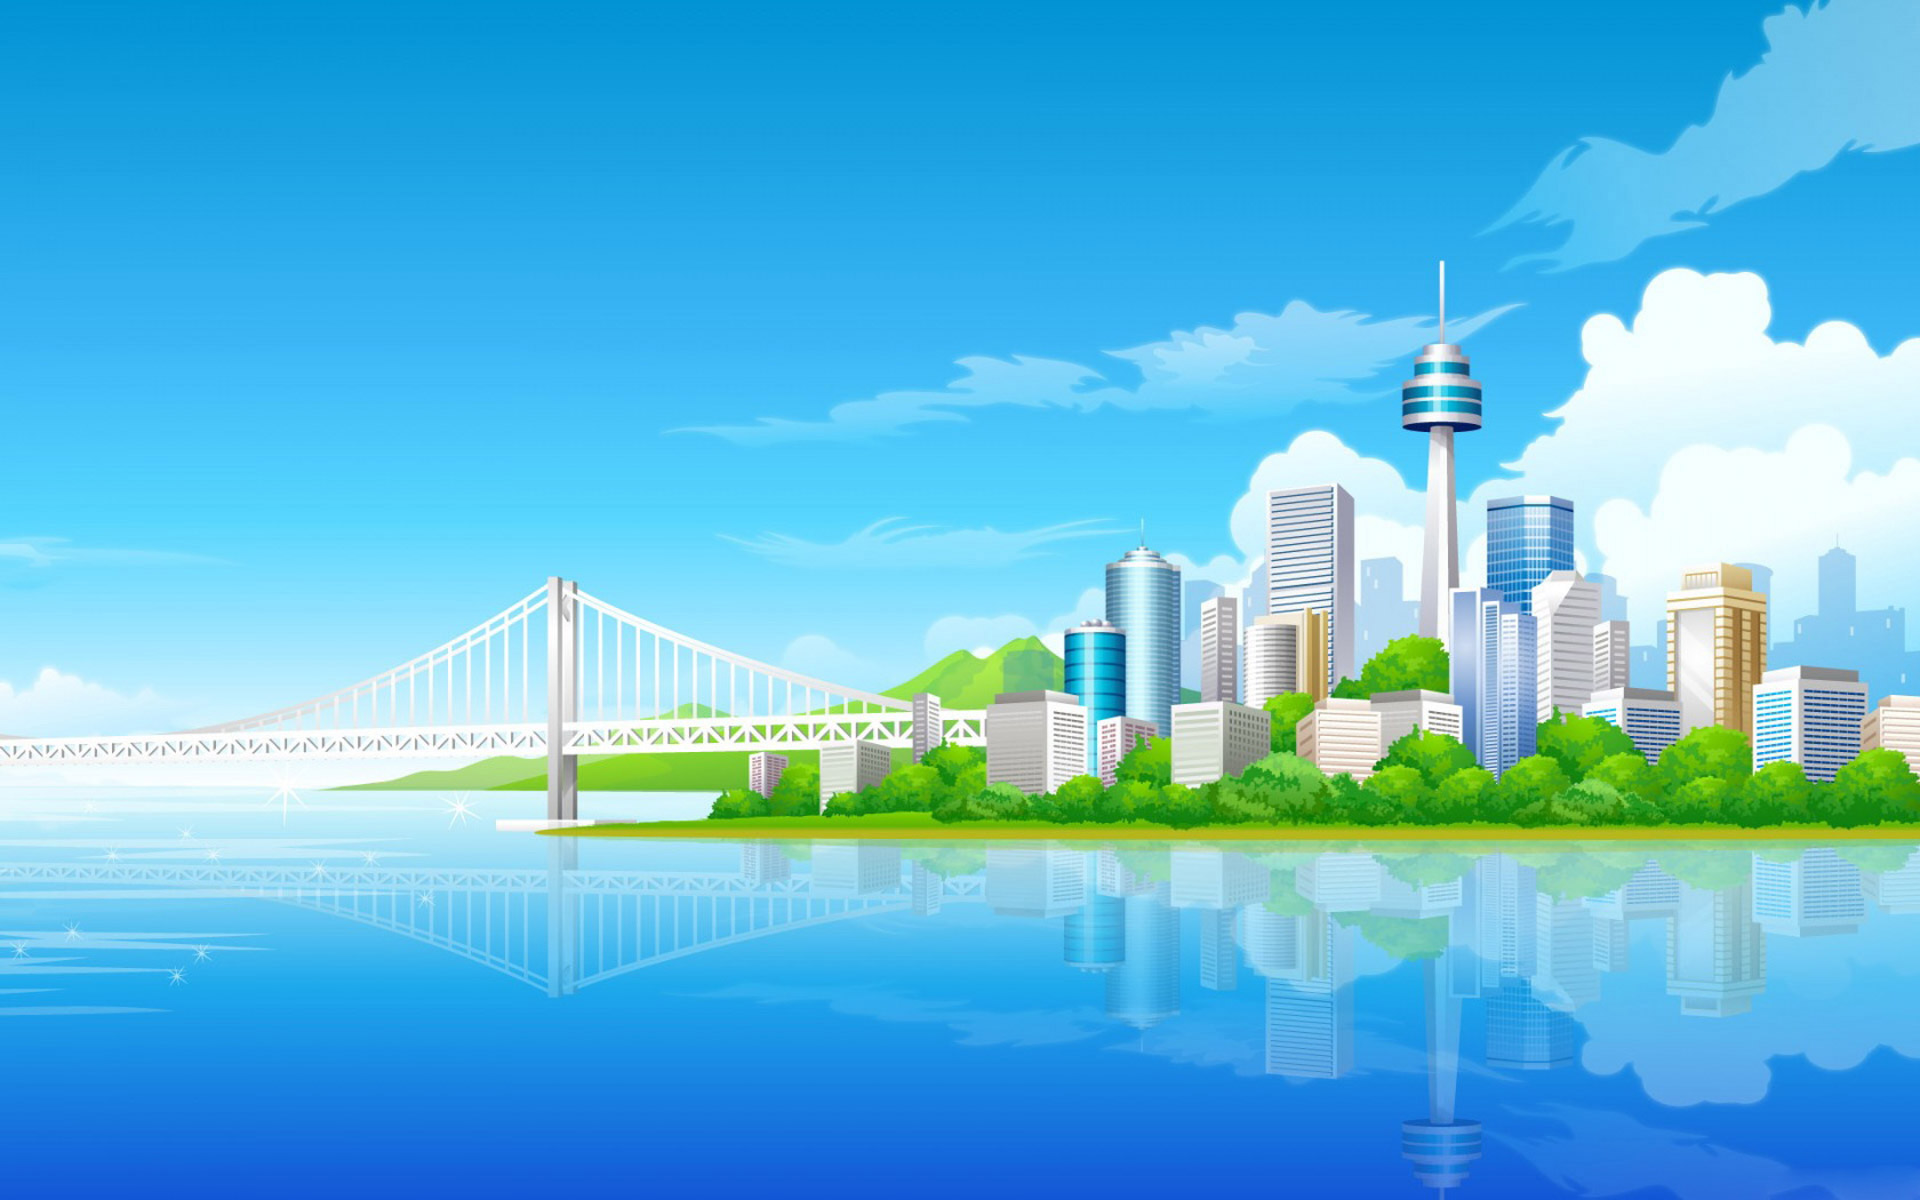 Free City Background Cliparts, Download Free Clip Art, Free.